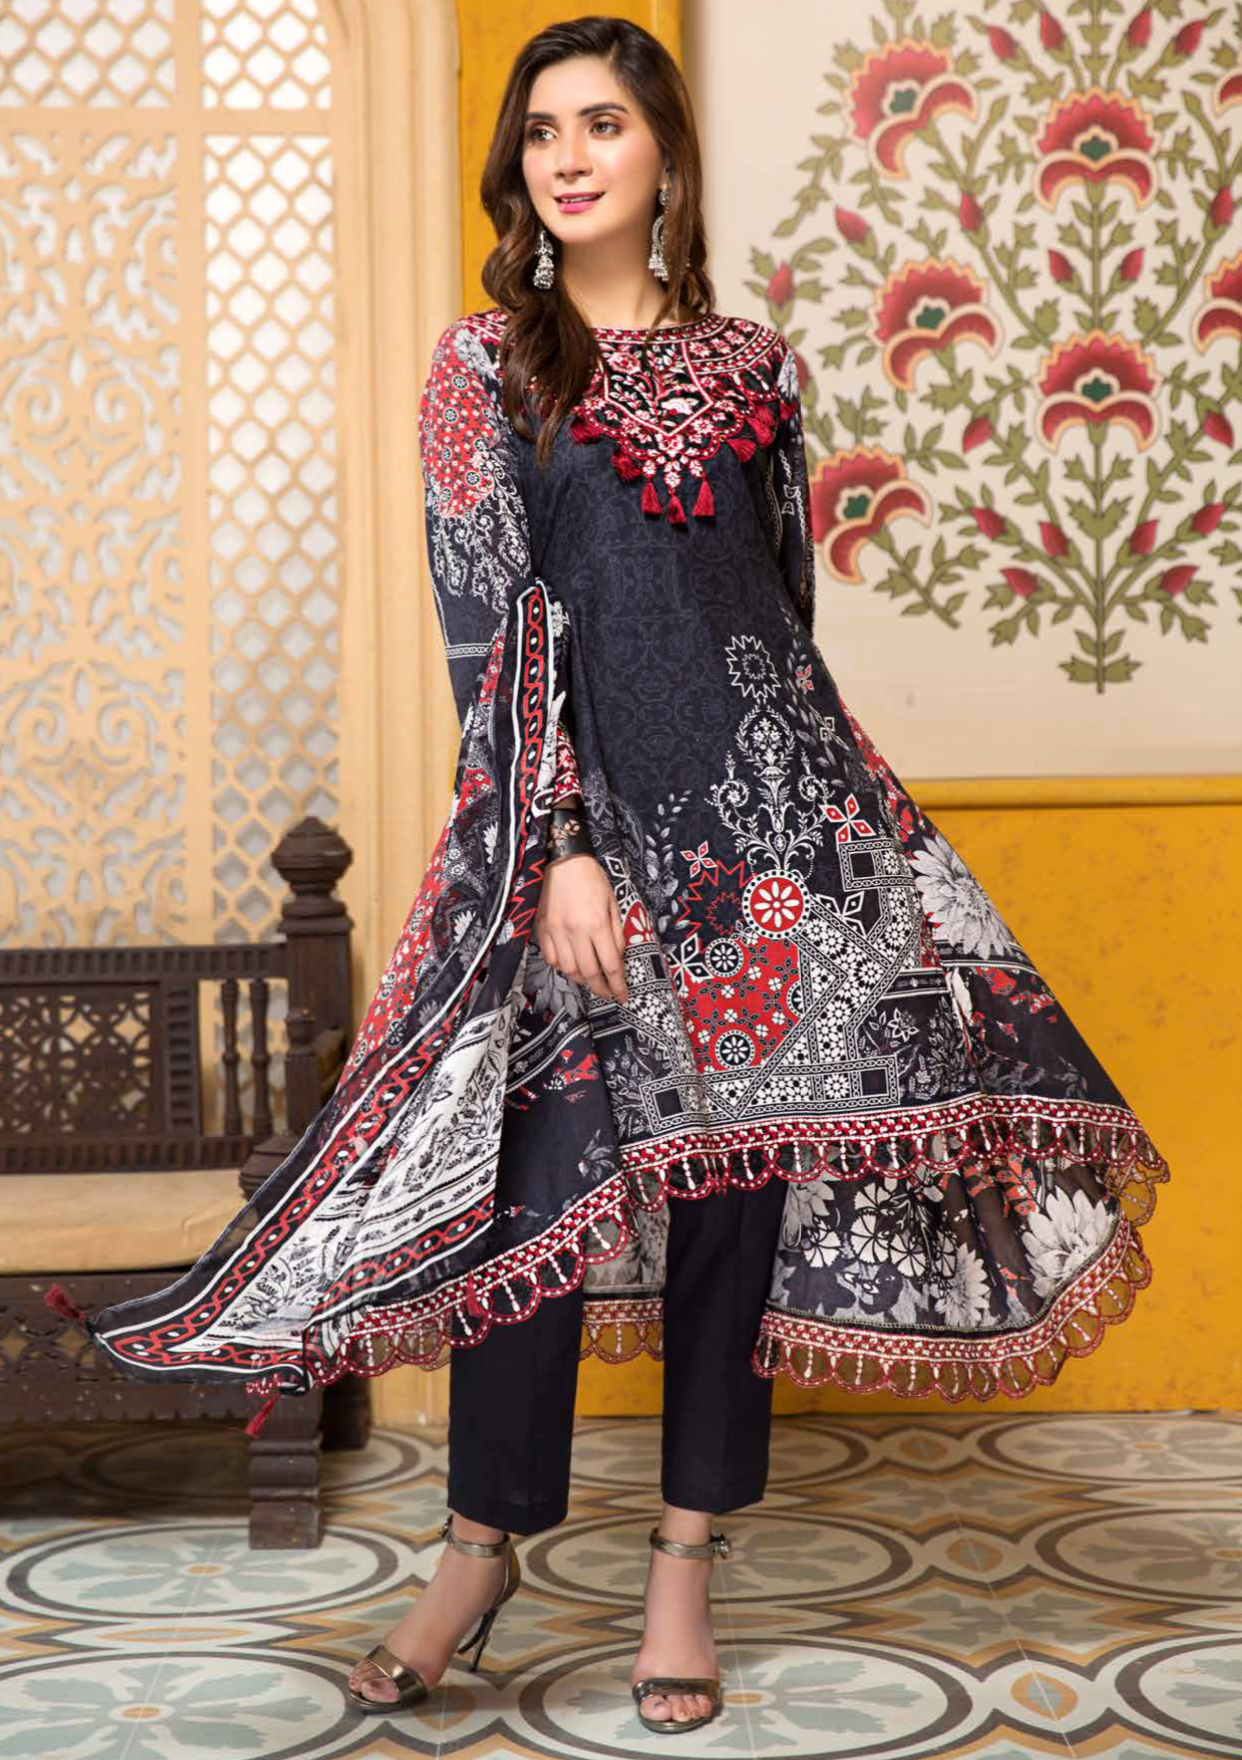 Black and Red Tehzeeb Mother Daughter Luxury Lawn Ladies Frock